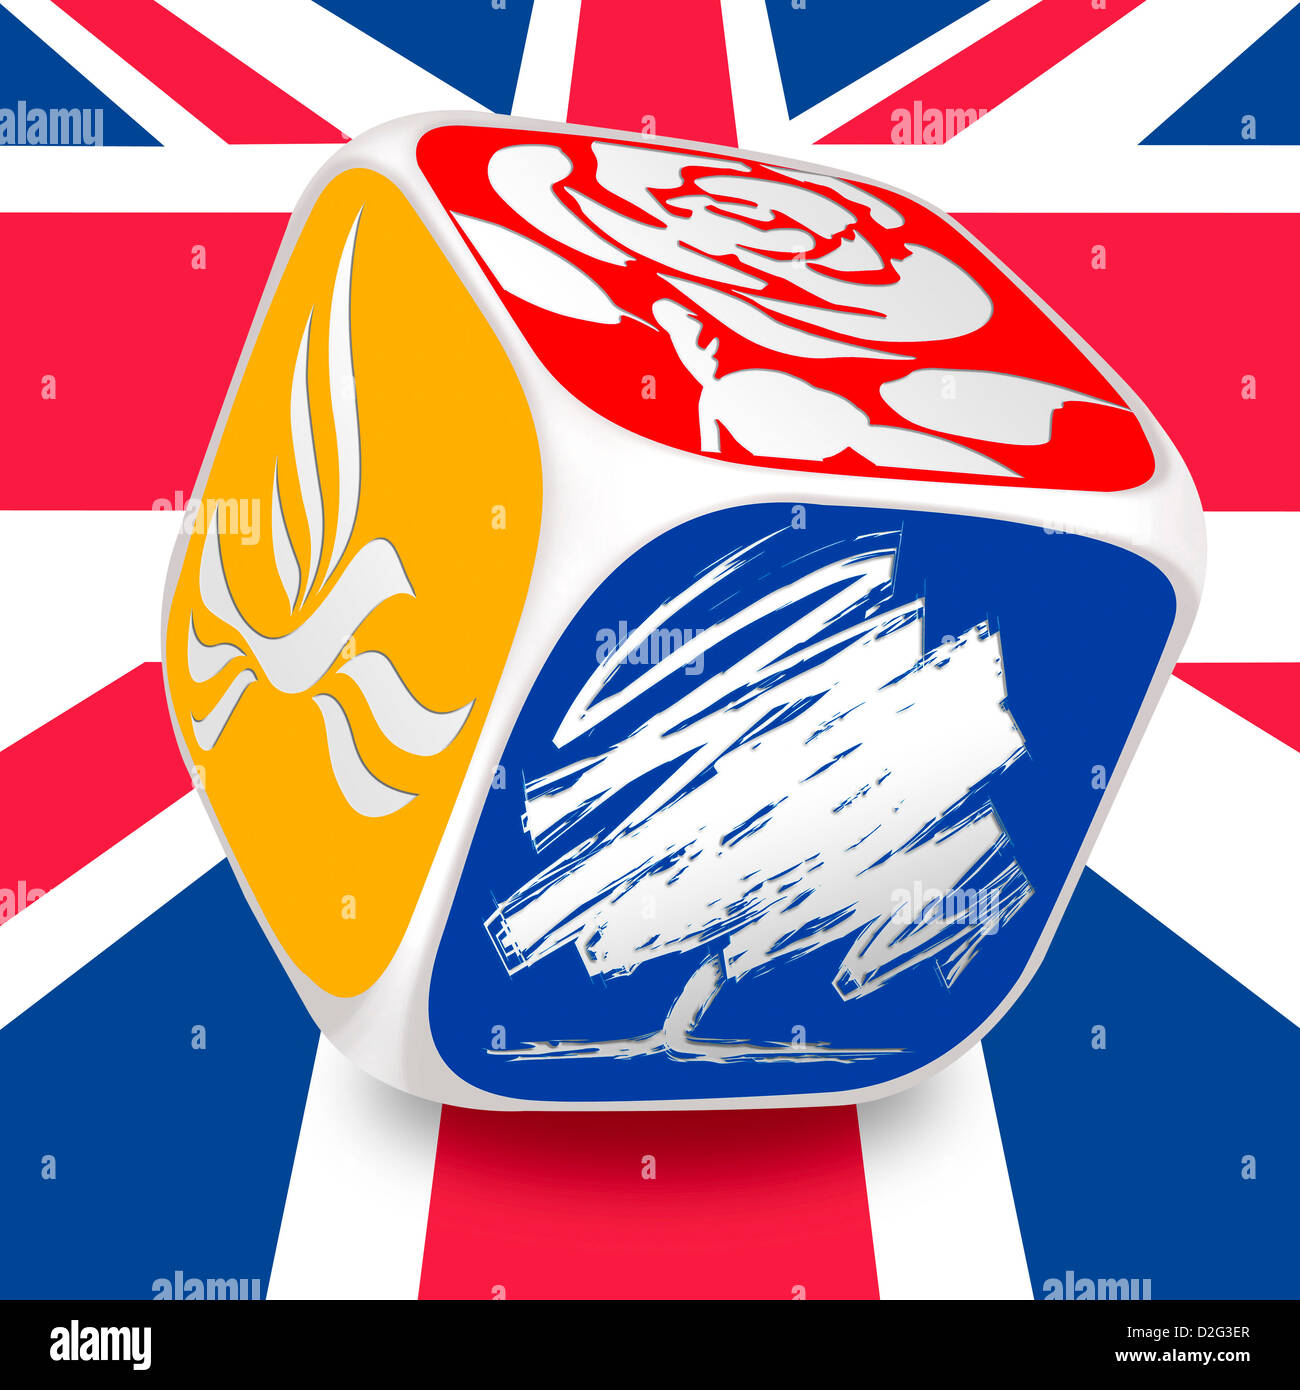 Dice with the logos of the three main UK political parties on a Union Jack background - Stock Image